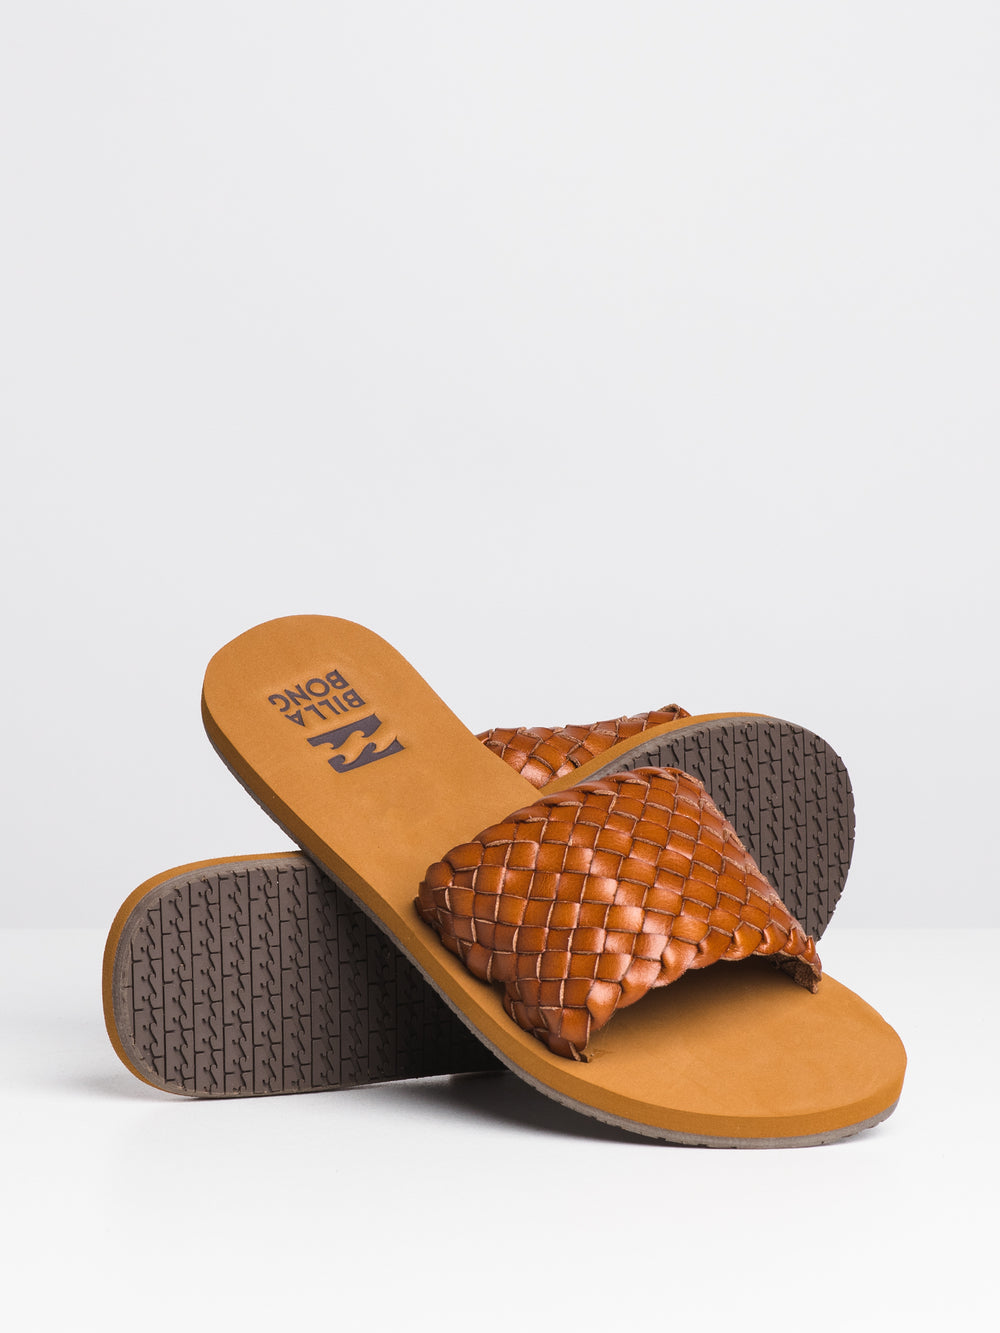 WOMENS ONE WAY - TAN